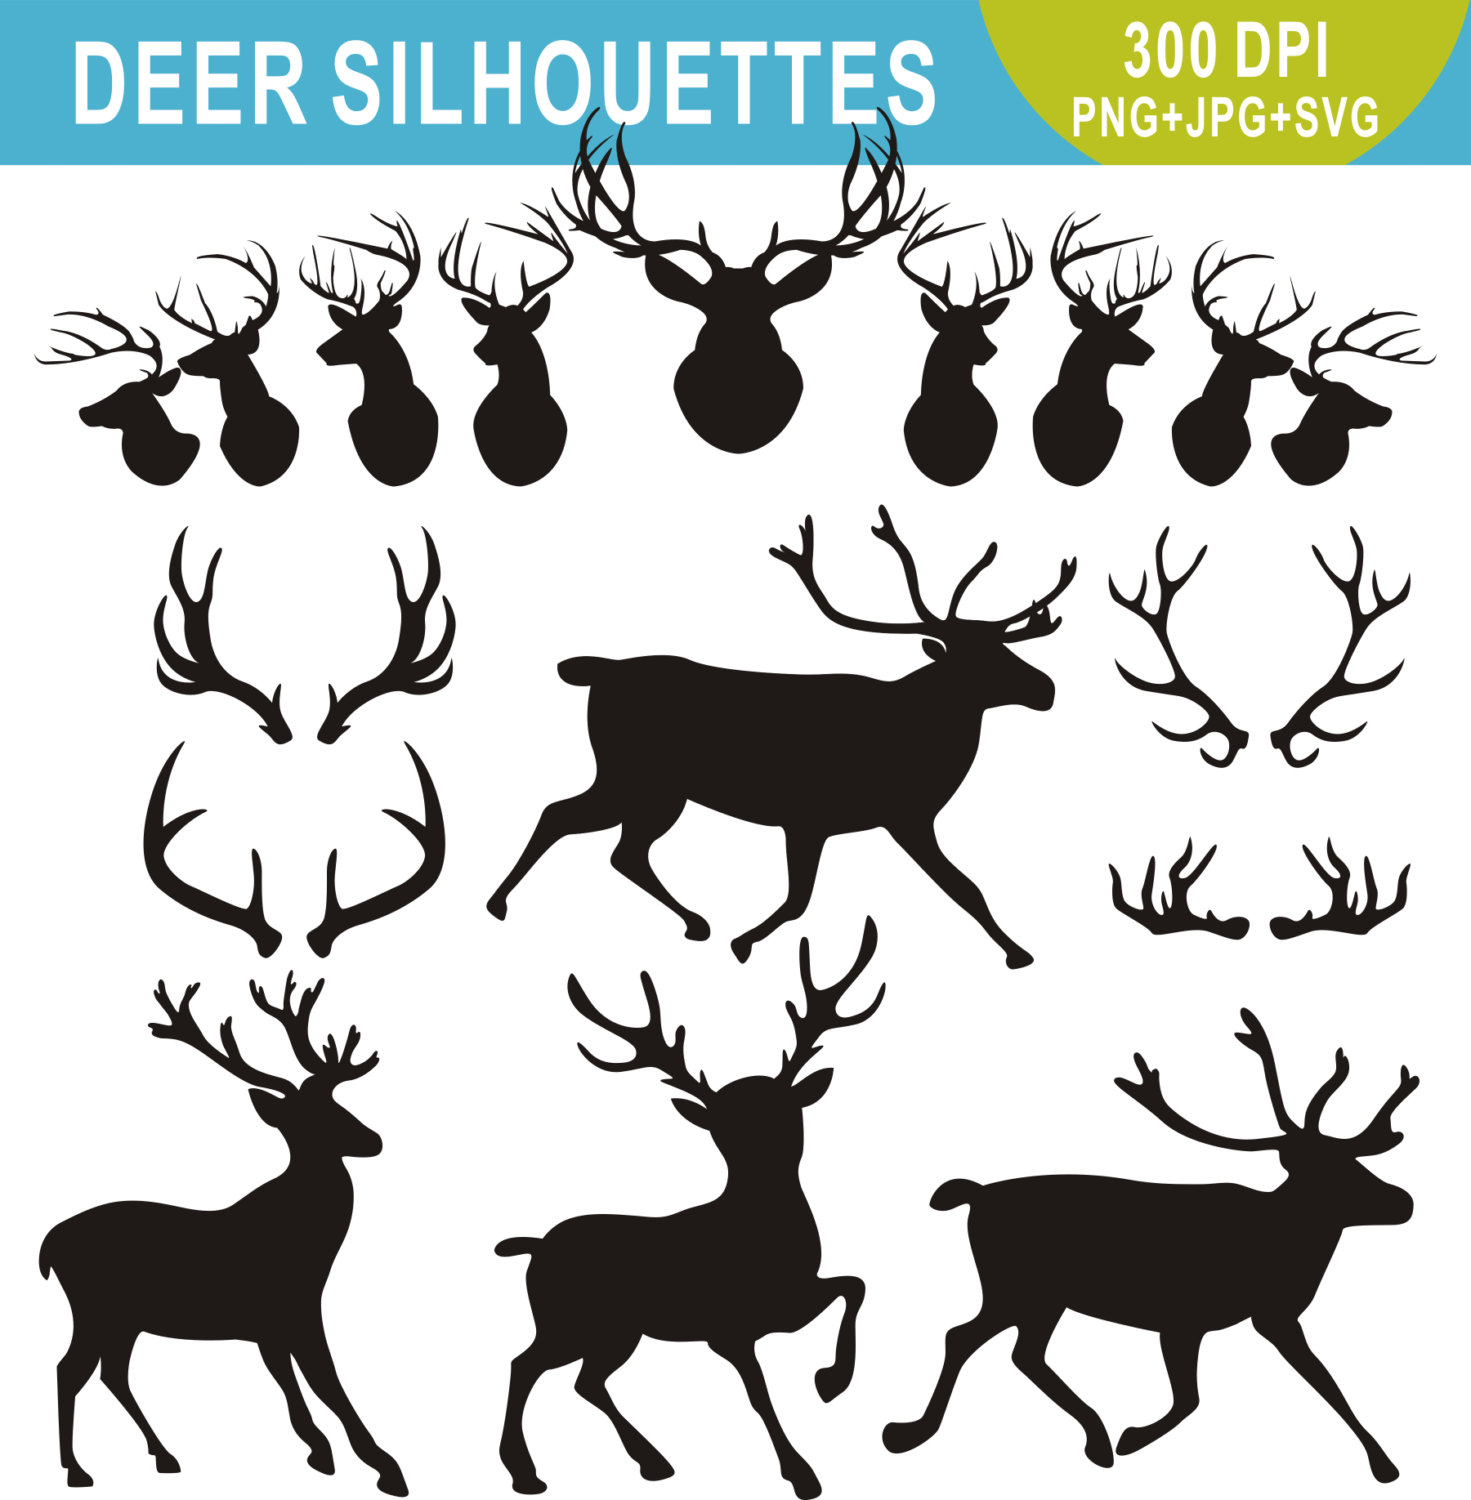 Caribou clipart big This Silhouettes a Deer Silhouettes